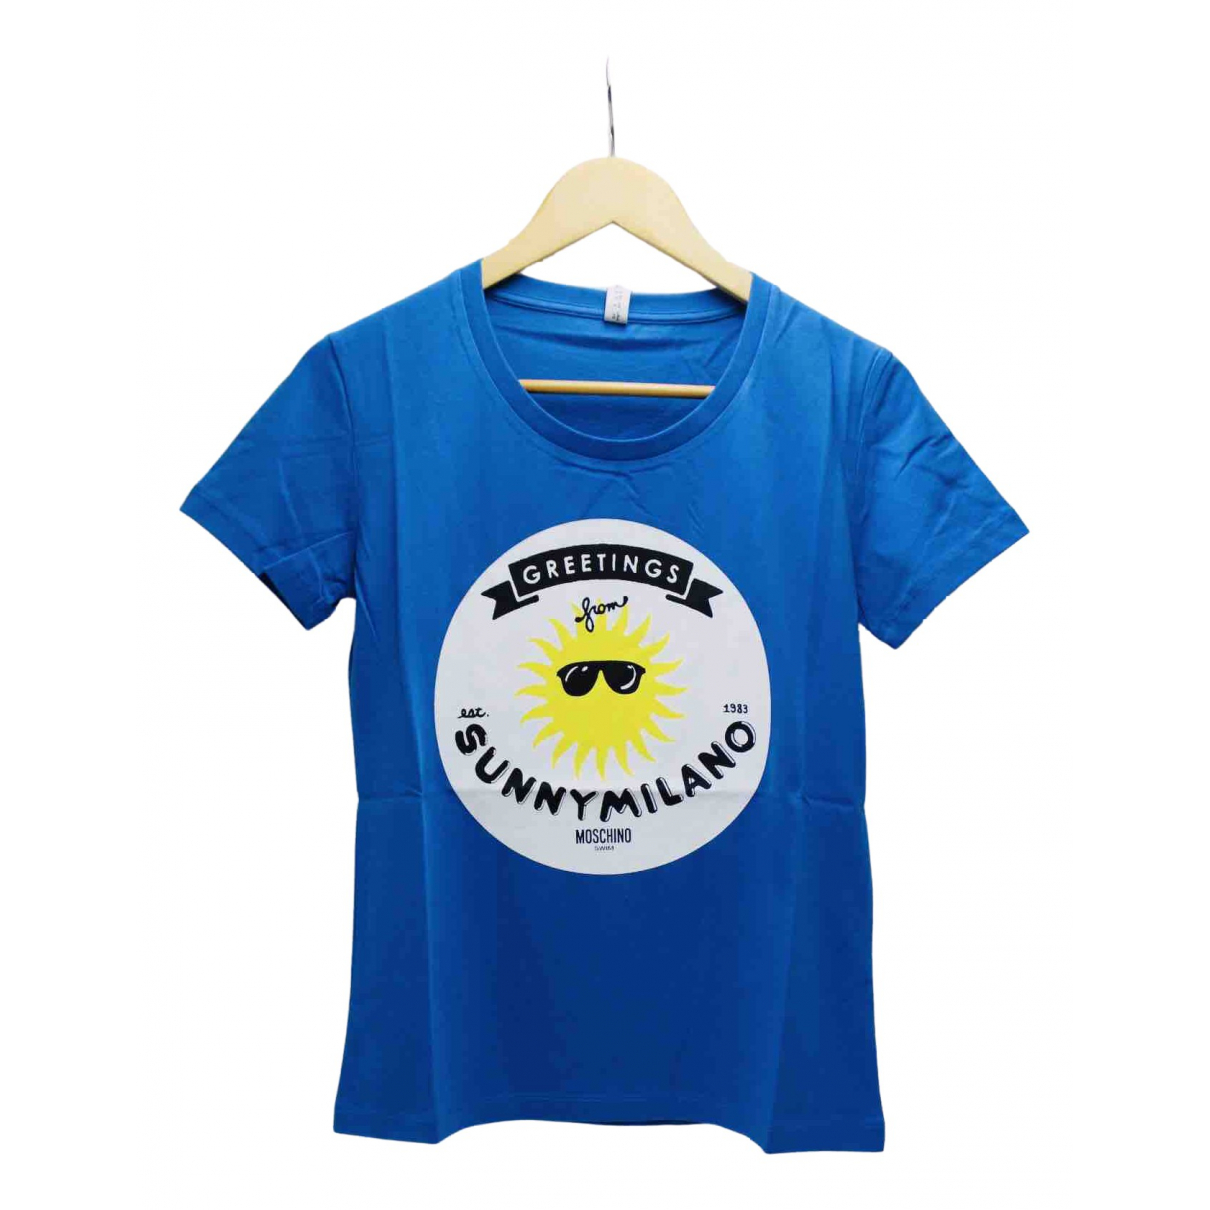 Moschino \N Blue Cotton  top for Women L International